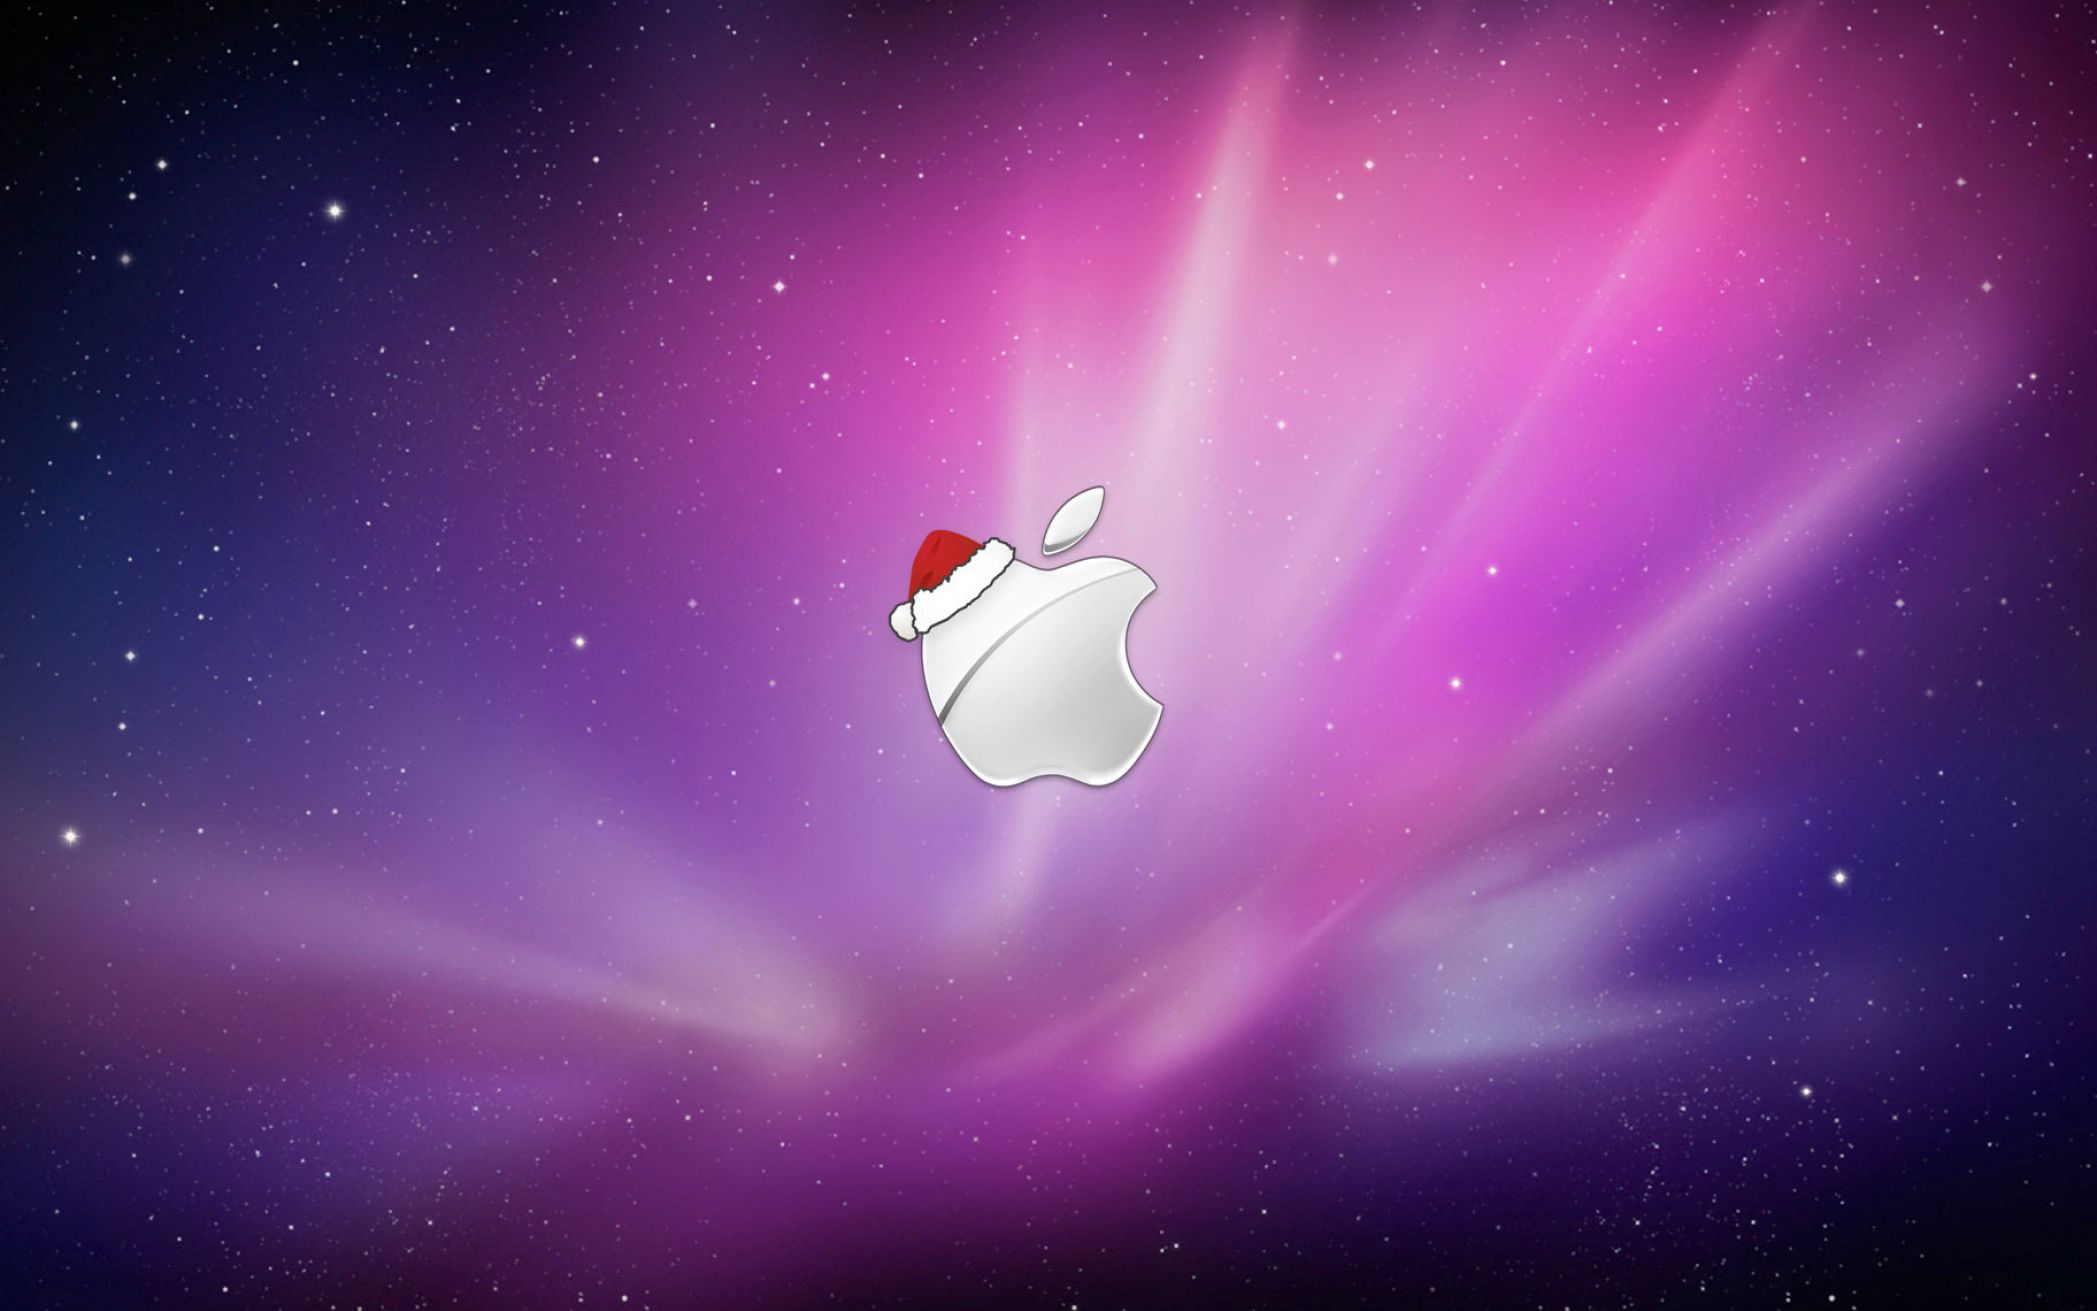 Animated christmas wallpaper for mac pictures 4 2097x1311